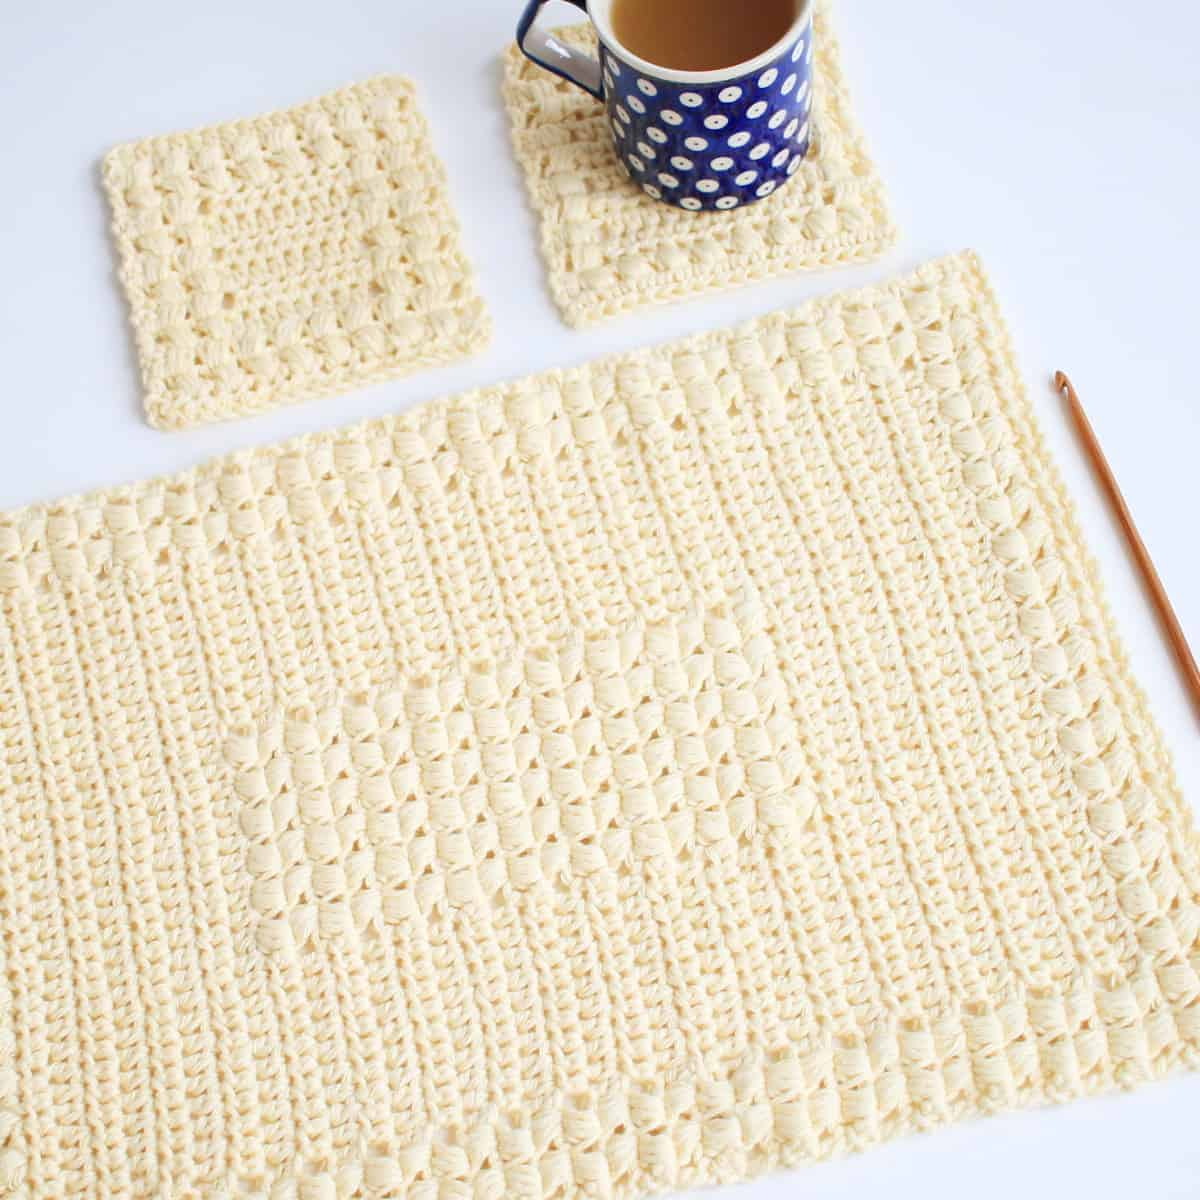 Crochet Free Matching Set of Sunny Hollow Placemats and Coasters